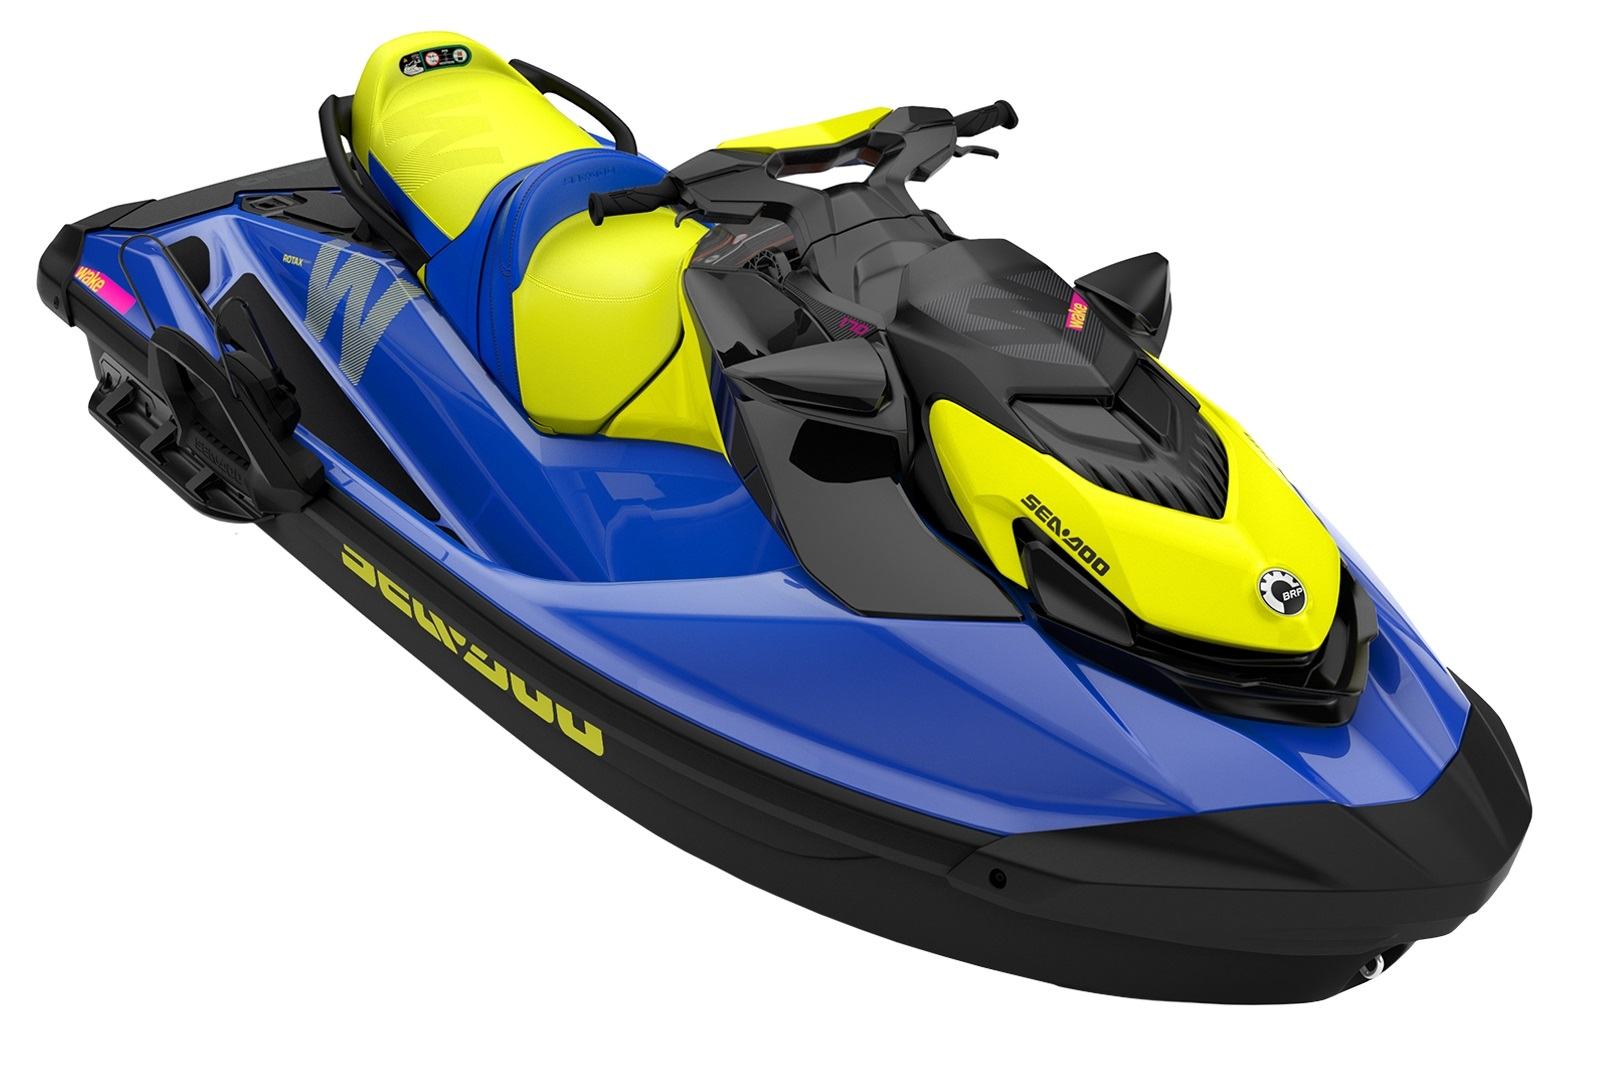 Sea Doo WAKE 170 3-up 170hp modro-žlutý